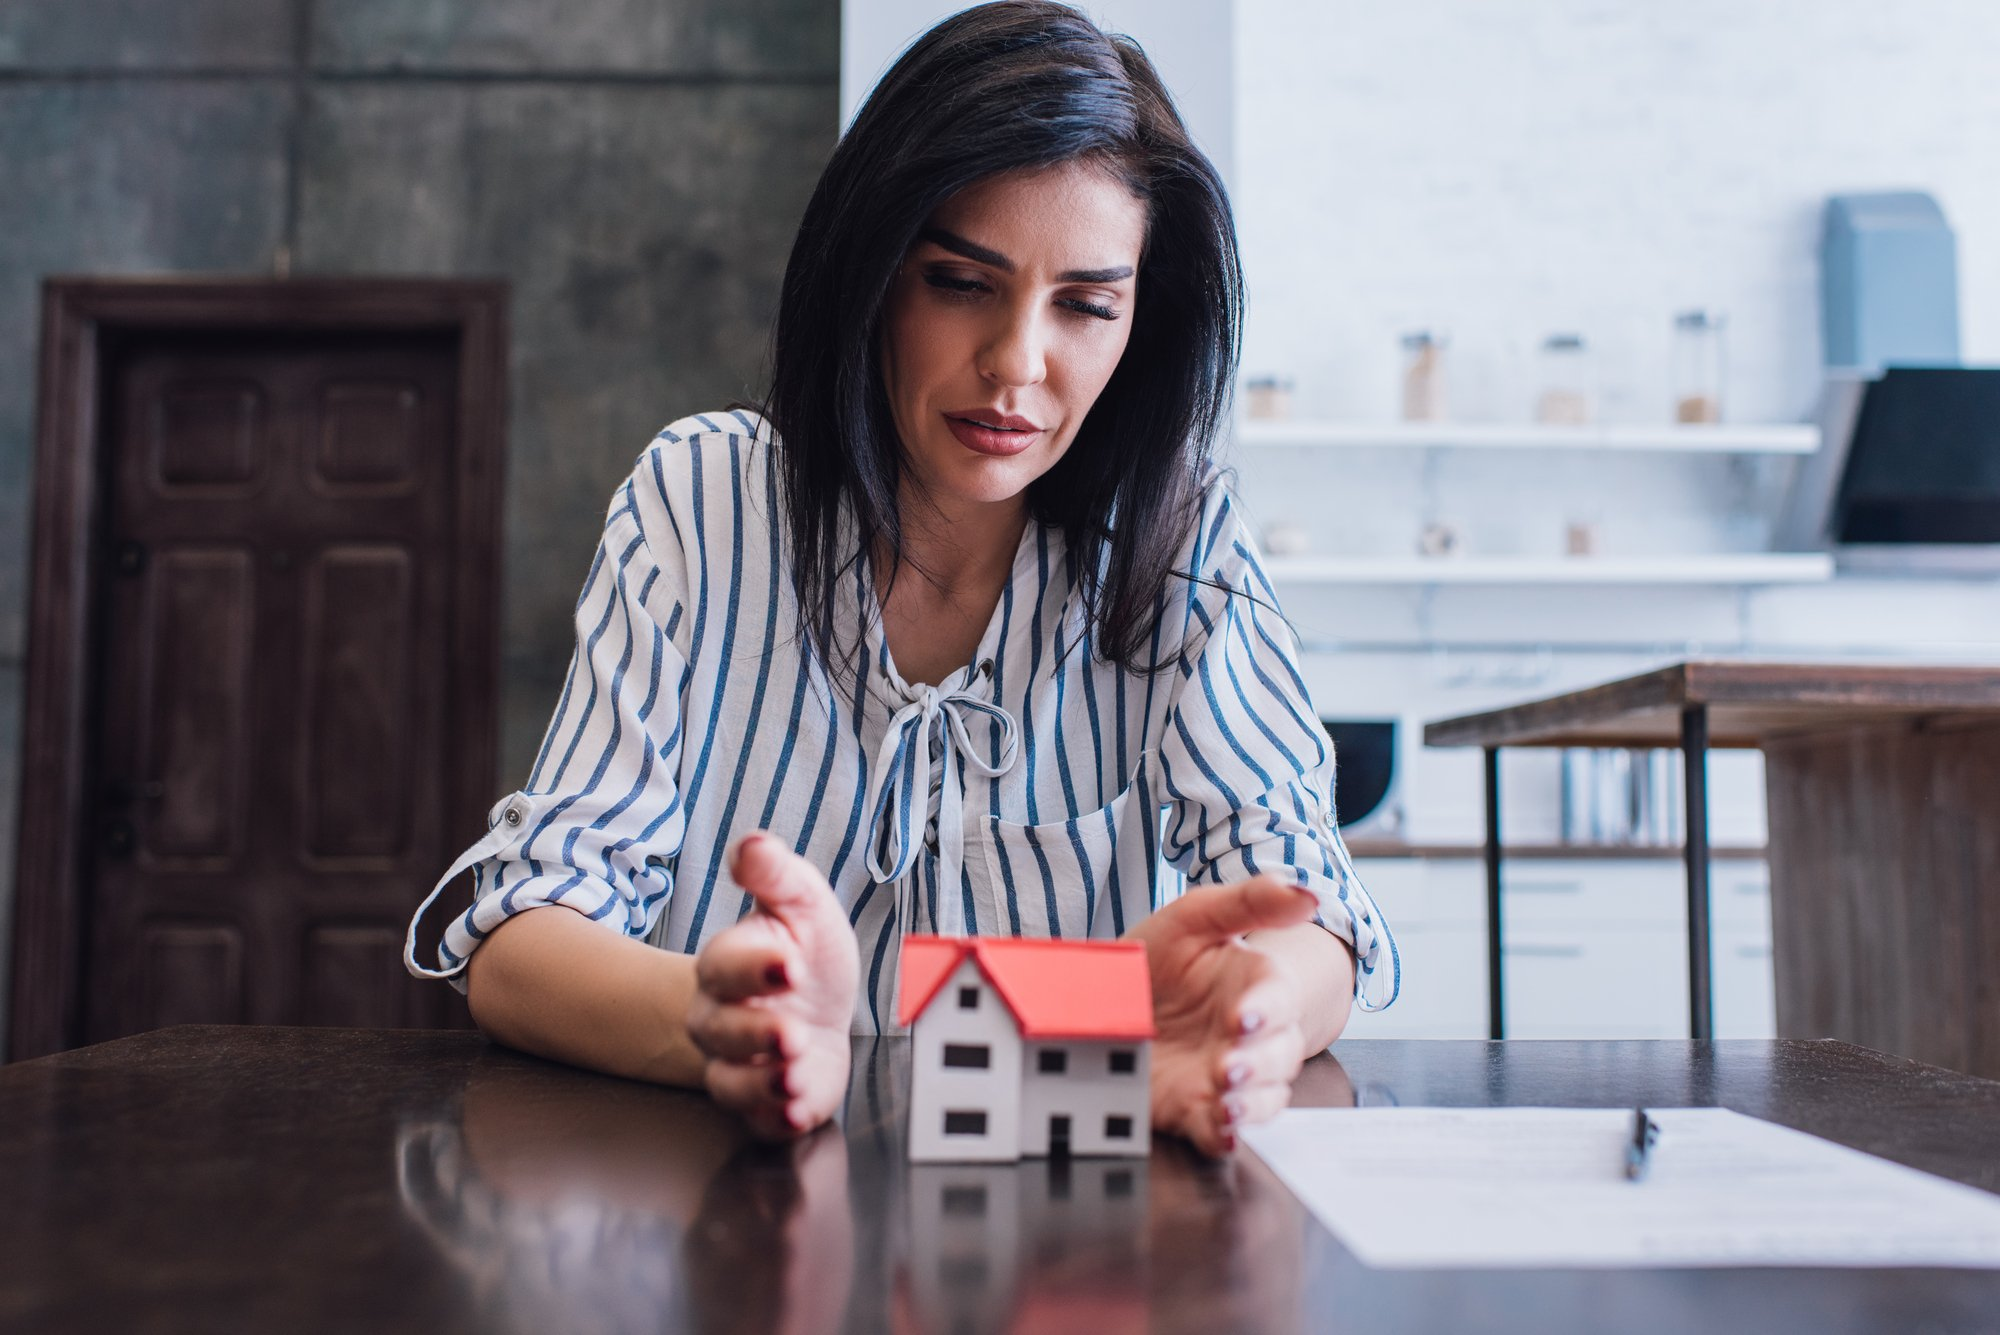 Concentrated woman putting hands near house model with paper and pen on table in room